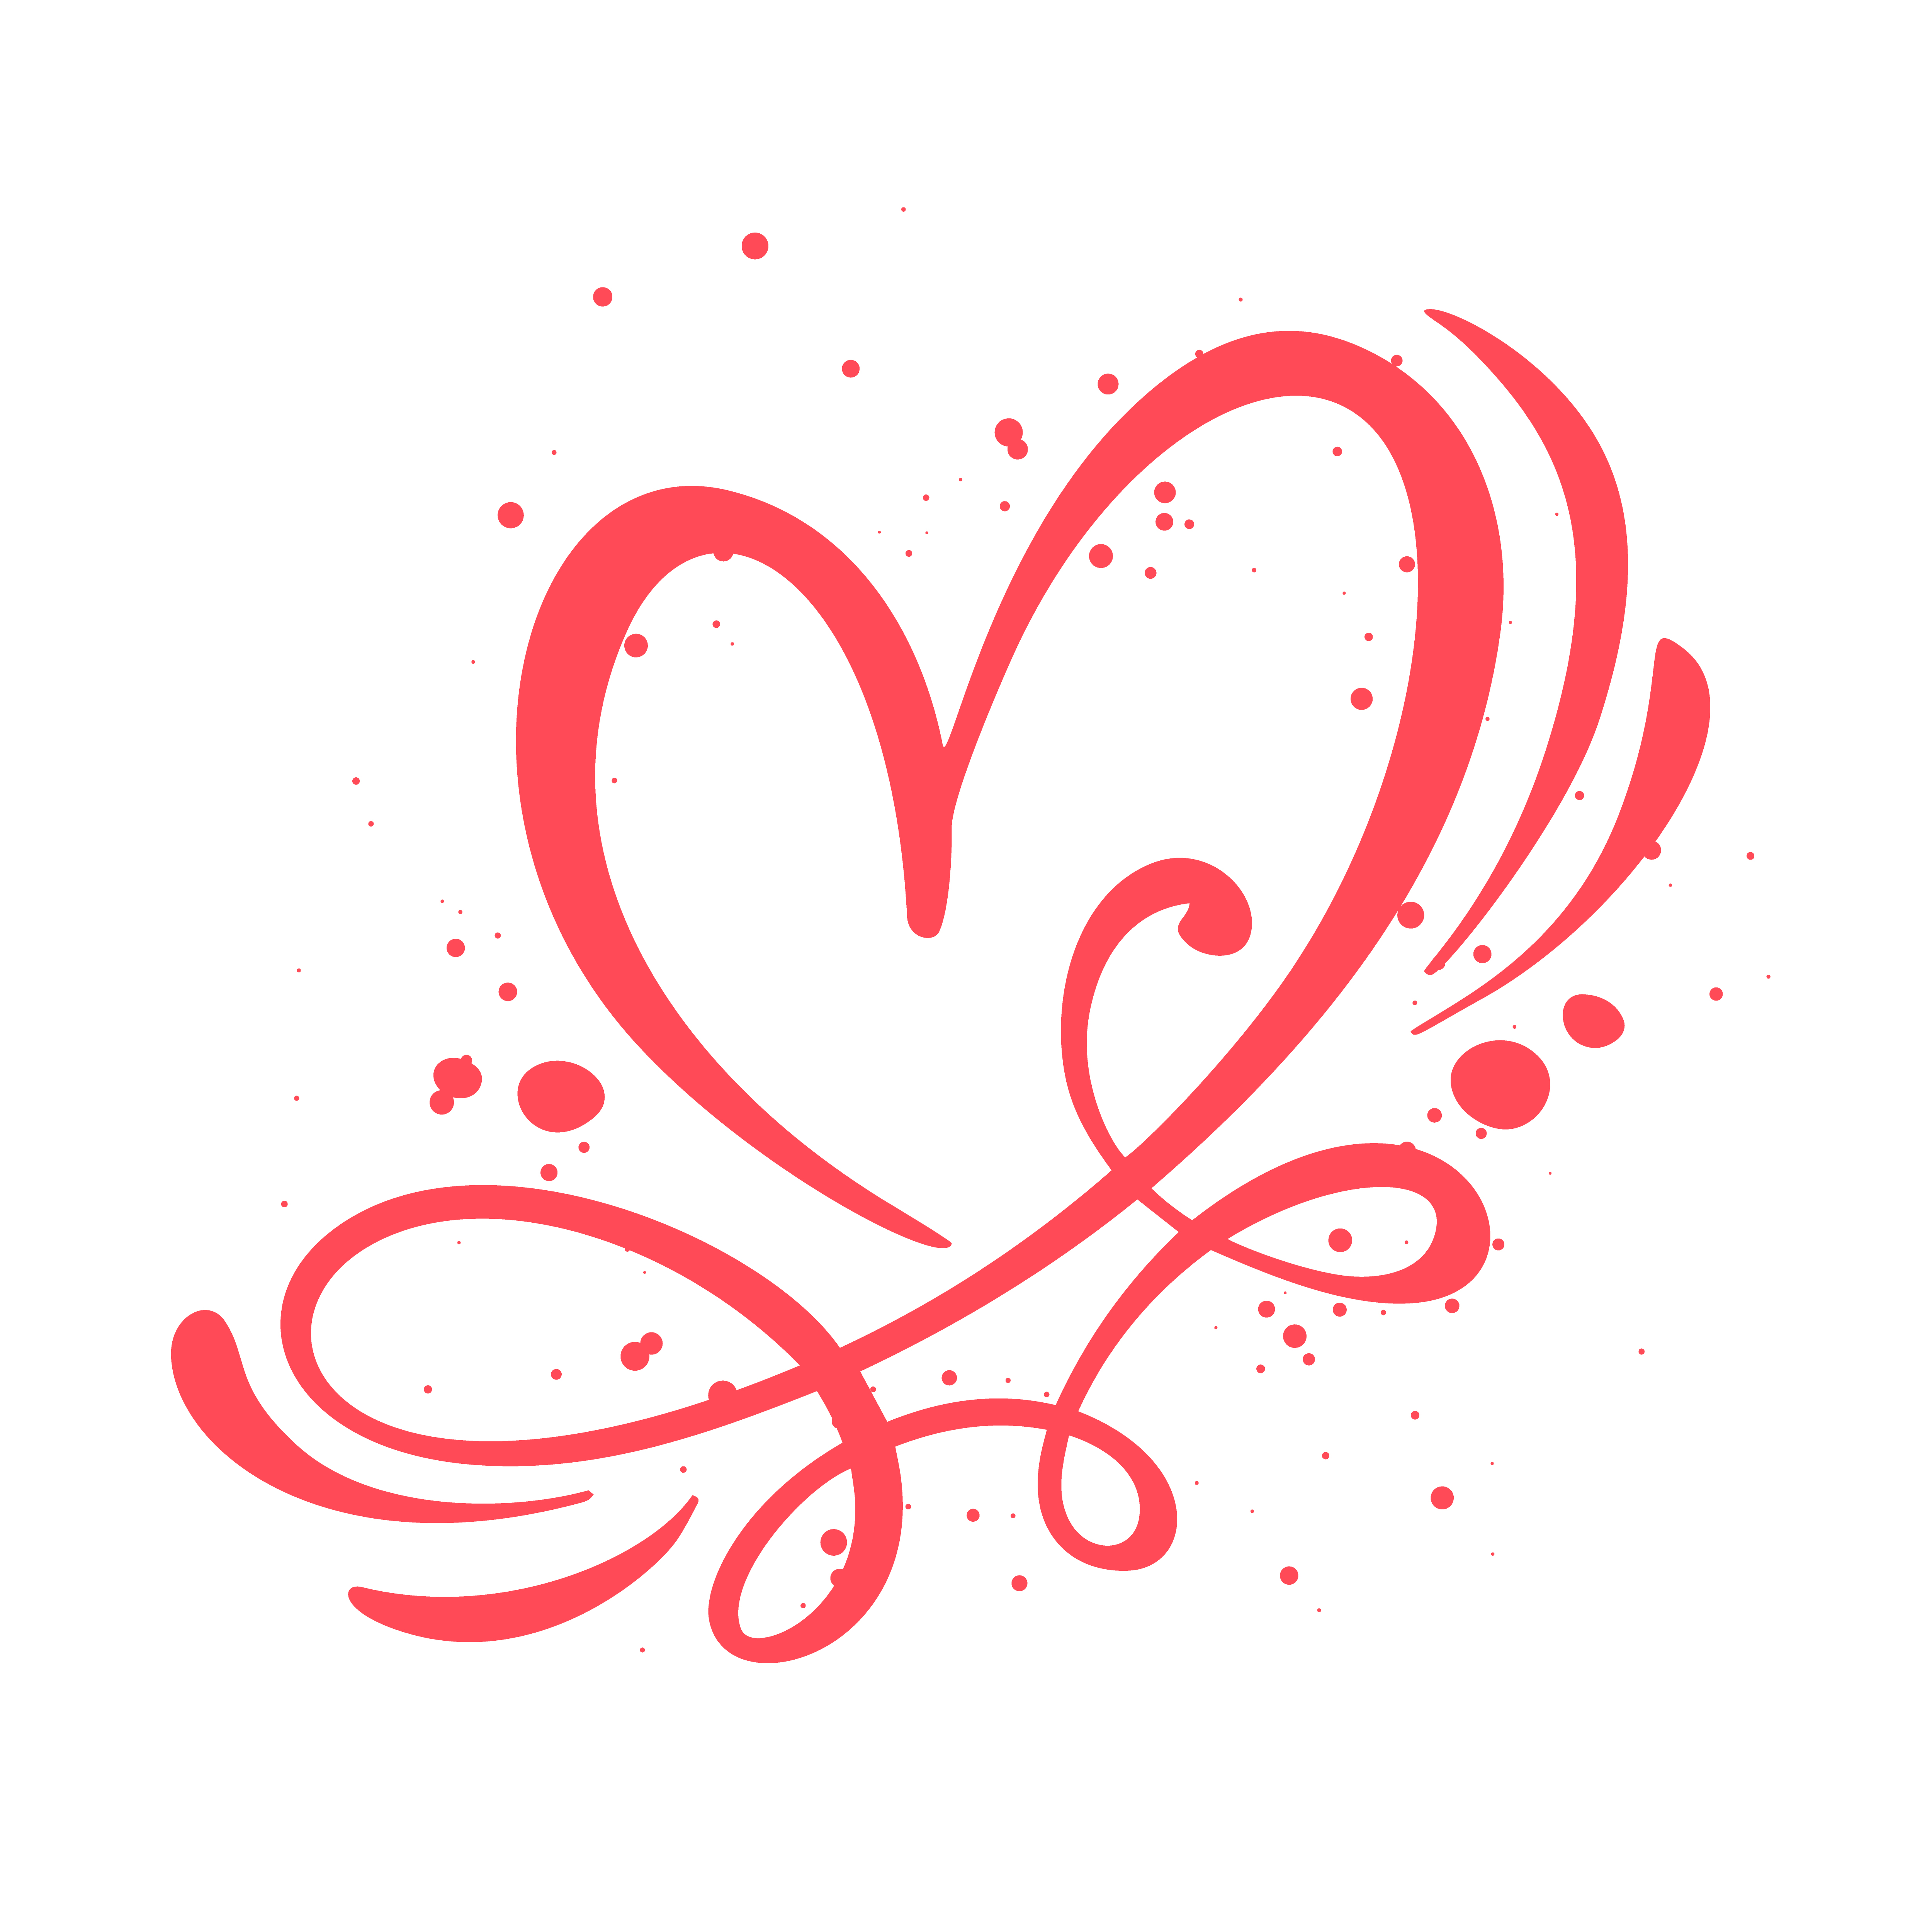 Heart love sign vector illustration download free for Love sign